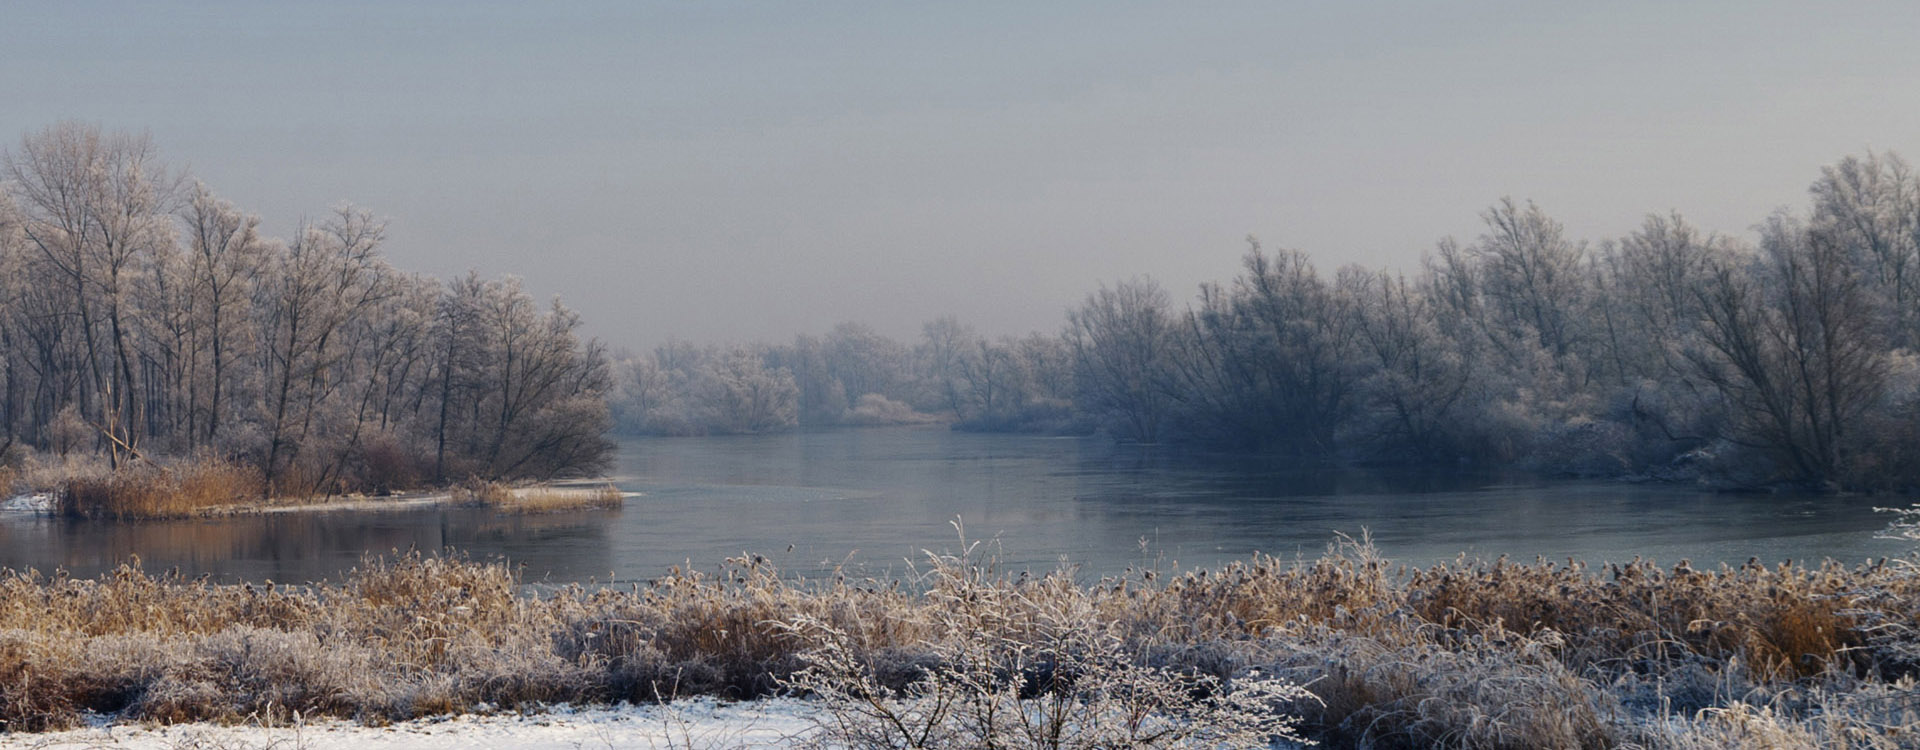 Winterlandschap panorama in de Biesbosch